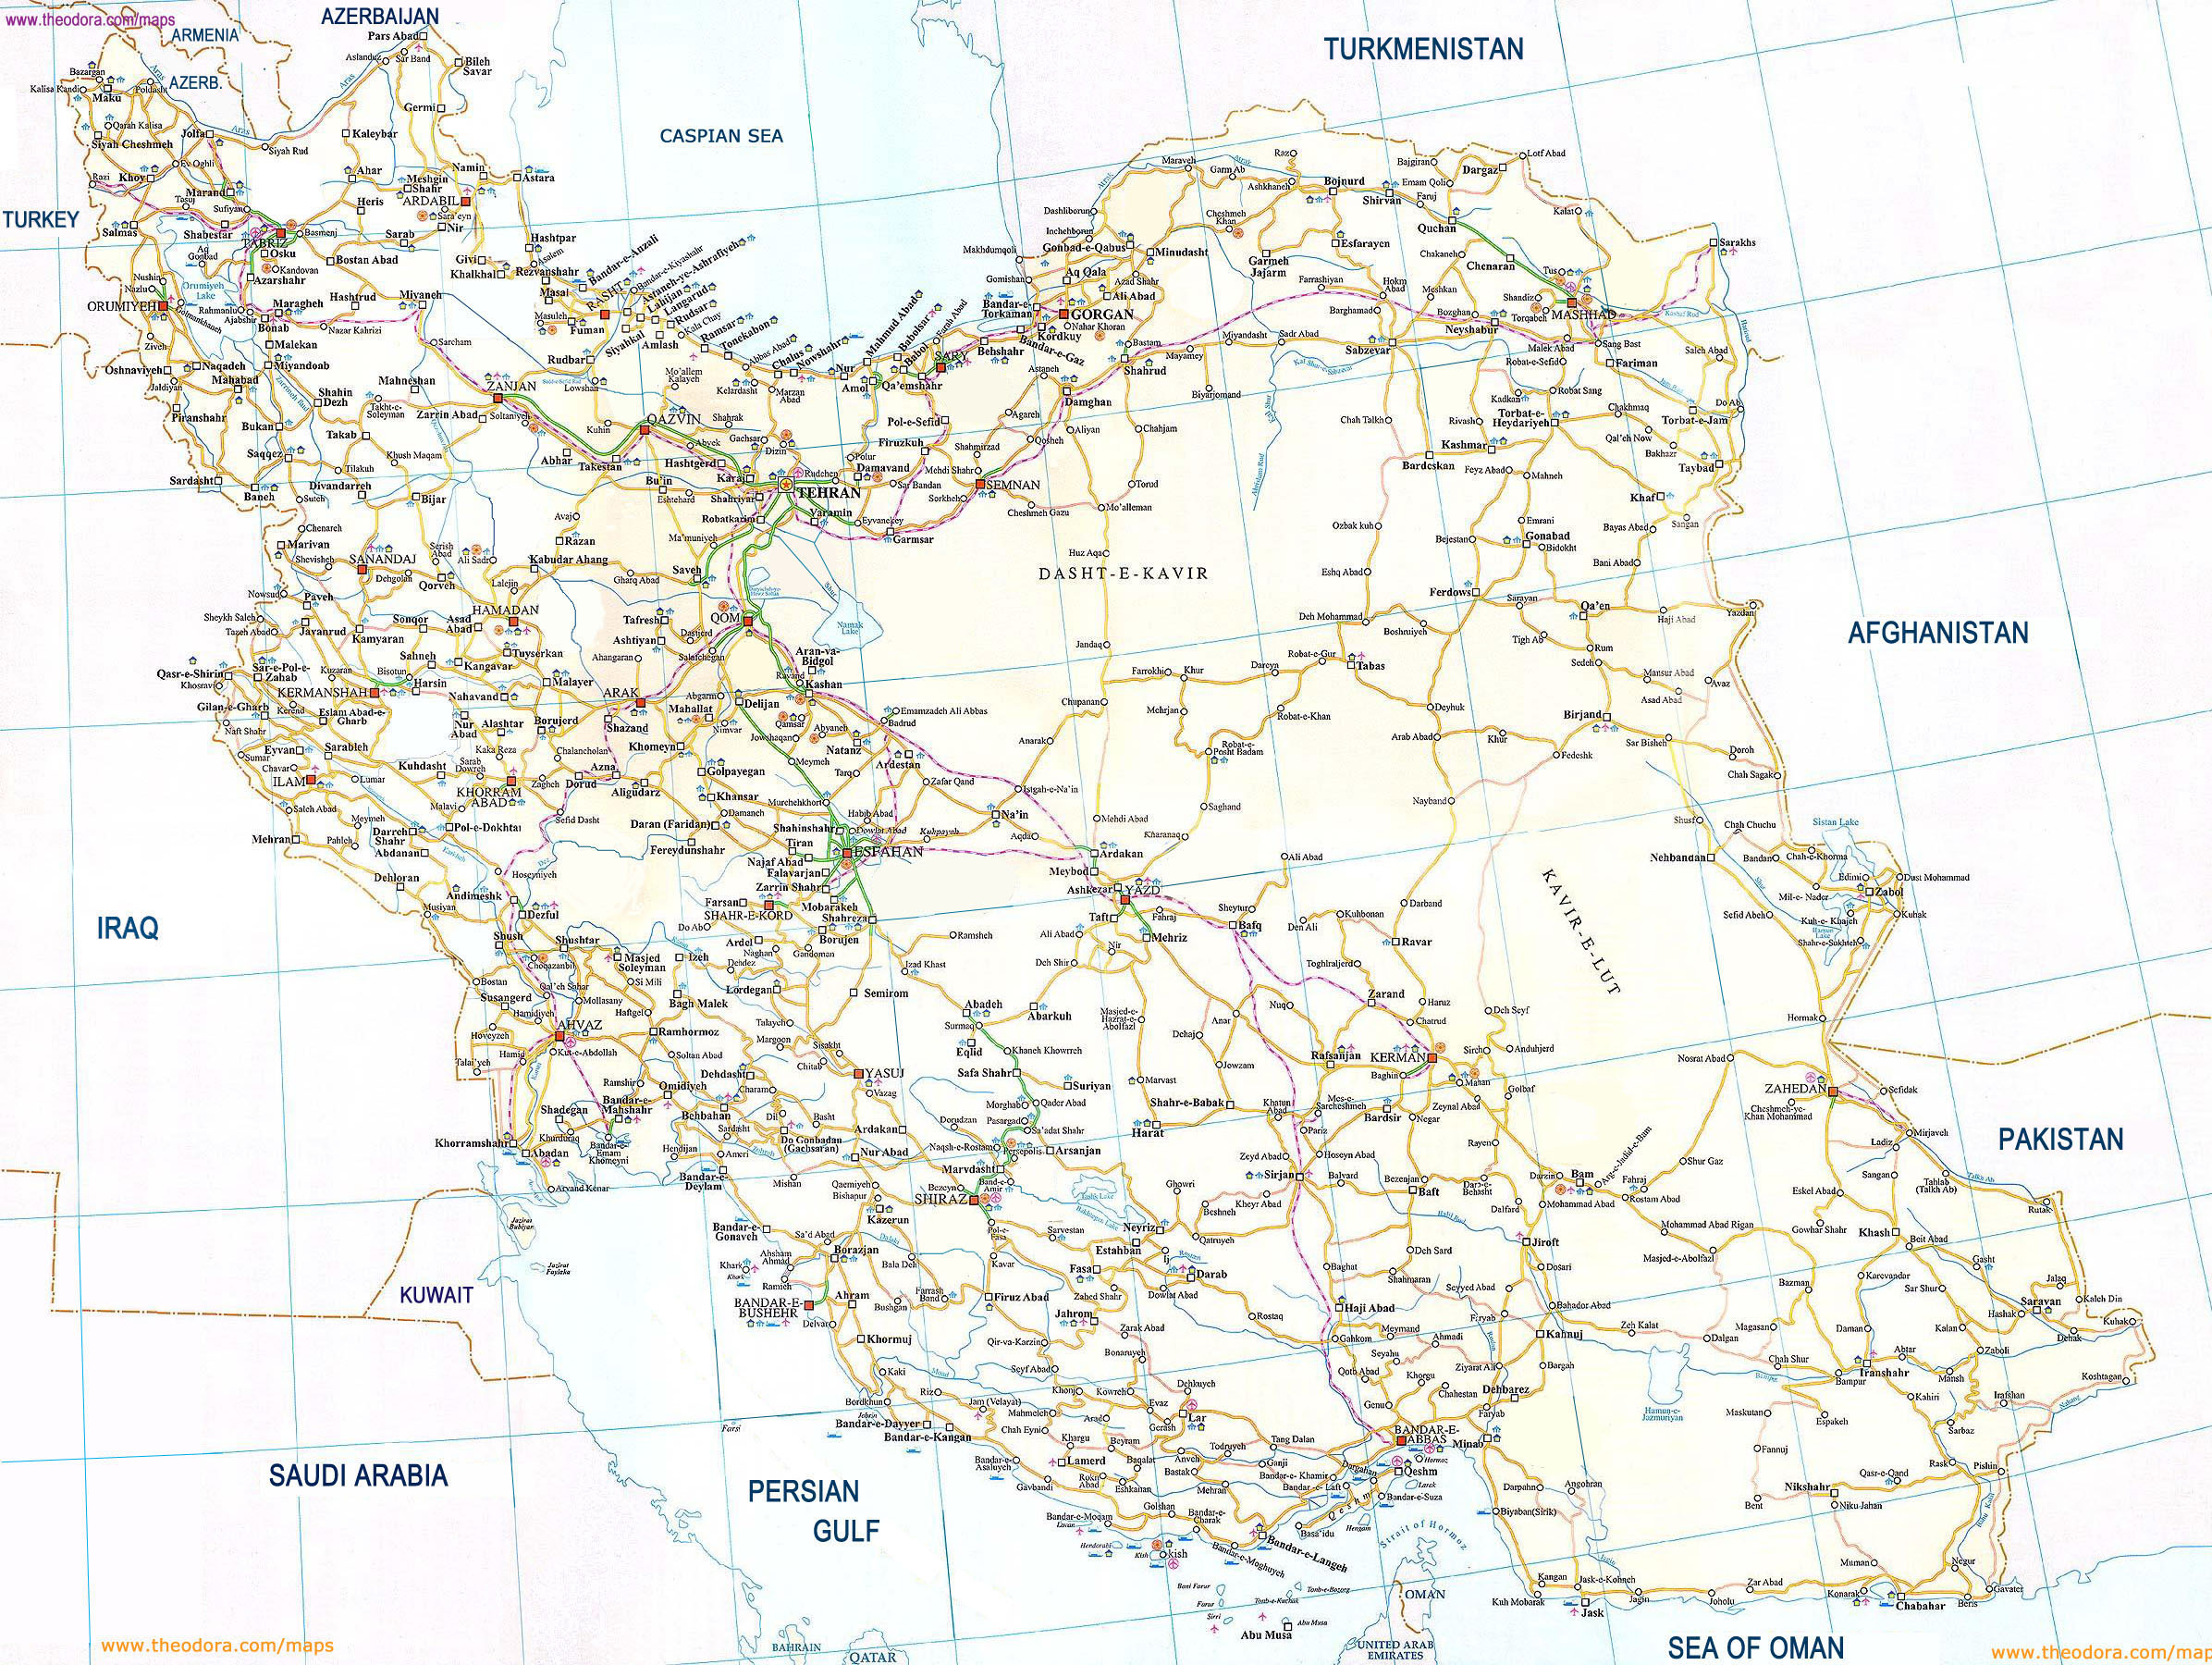 Large Detailed Road Map Of Iran Iran Large Detailed Road Map - Map of iran